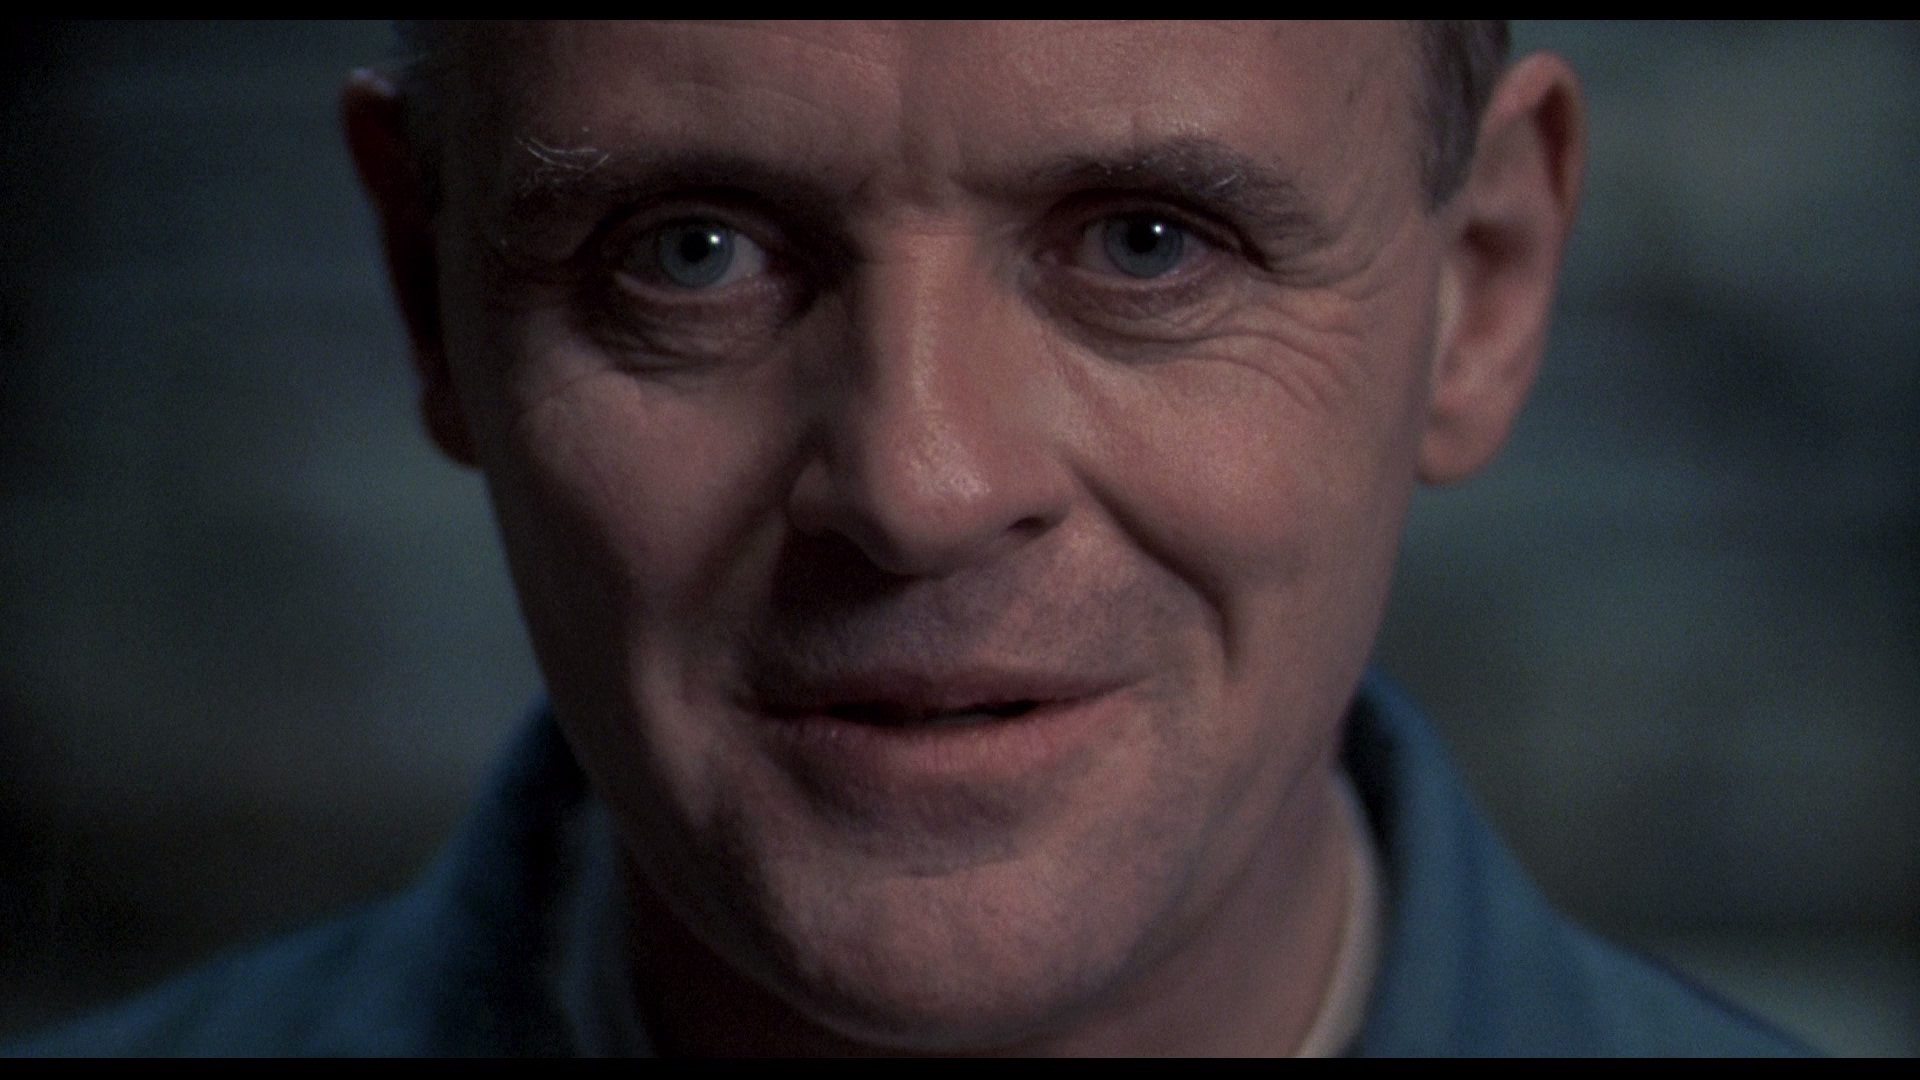 Hannibal Lecter _ The Silence Of The Lambs Wiki _ Fandom powered by Wikia